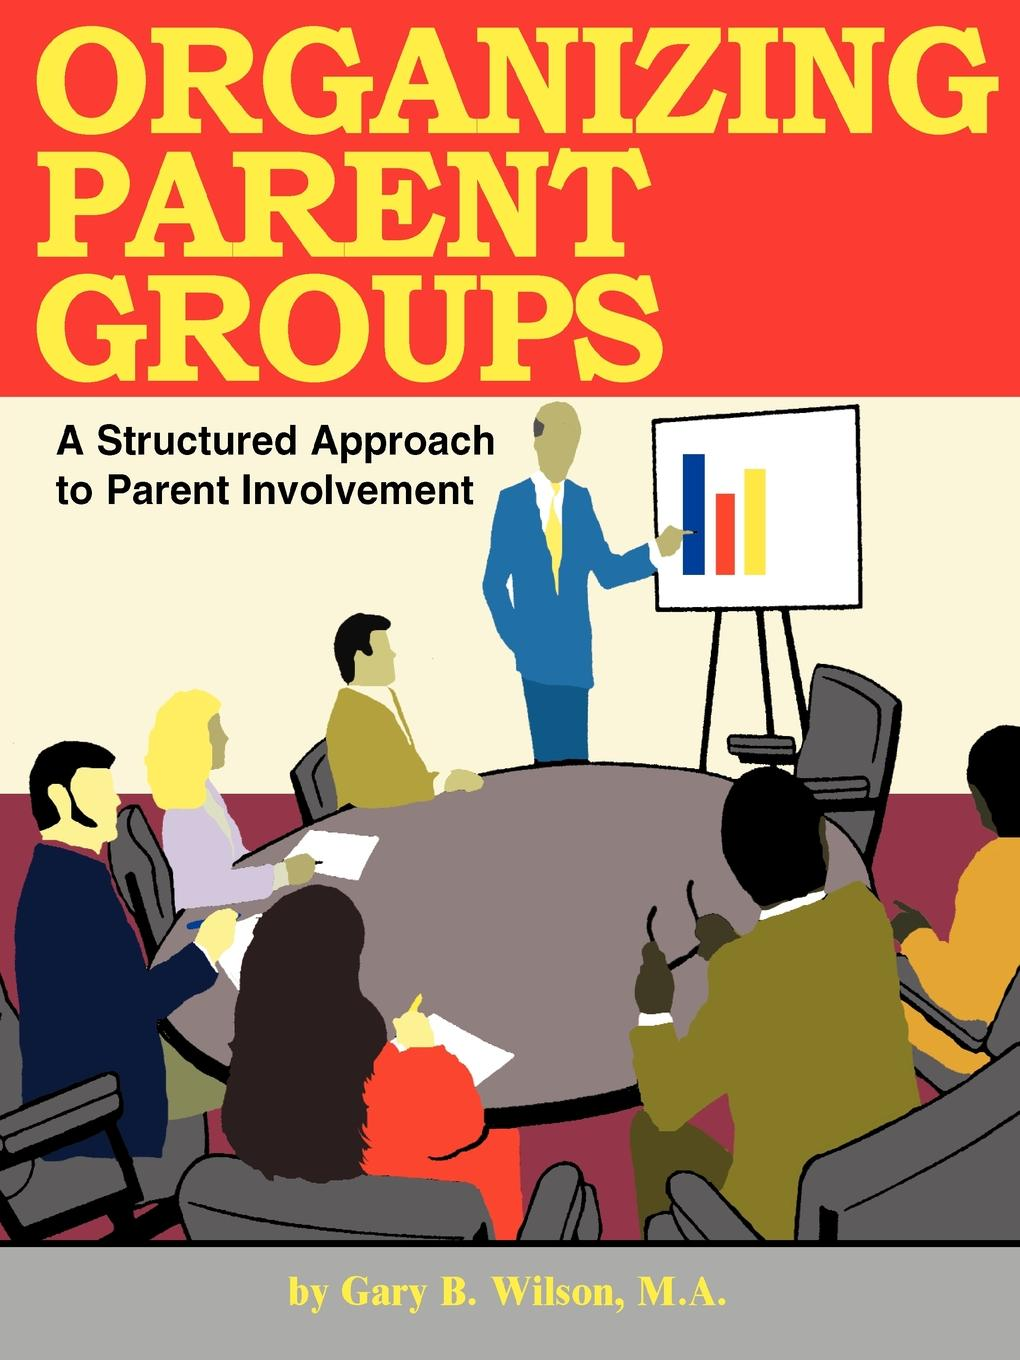 Organizing Parent Groups By: Gary B. Wilson, M.A.